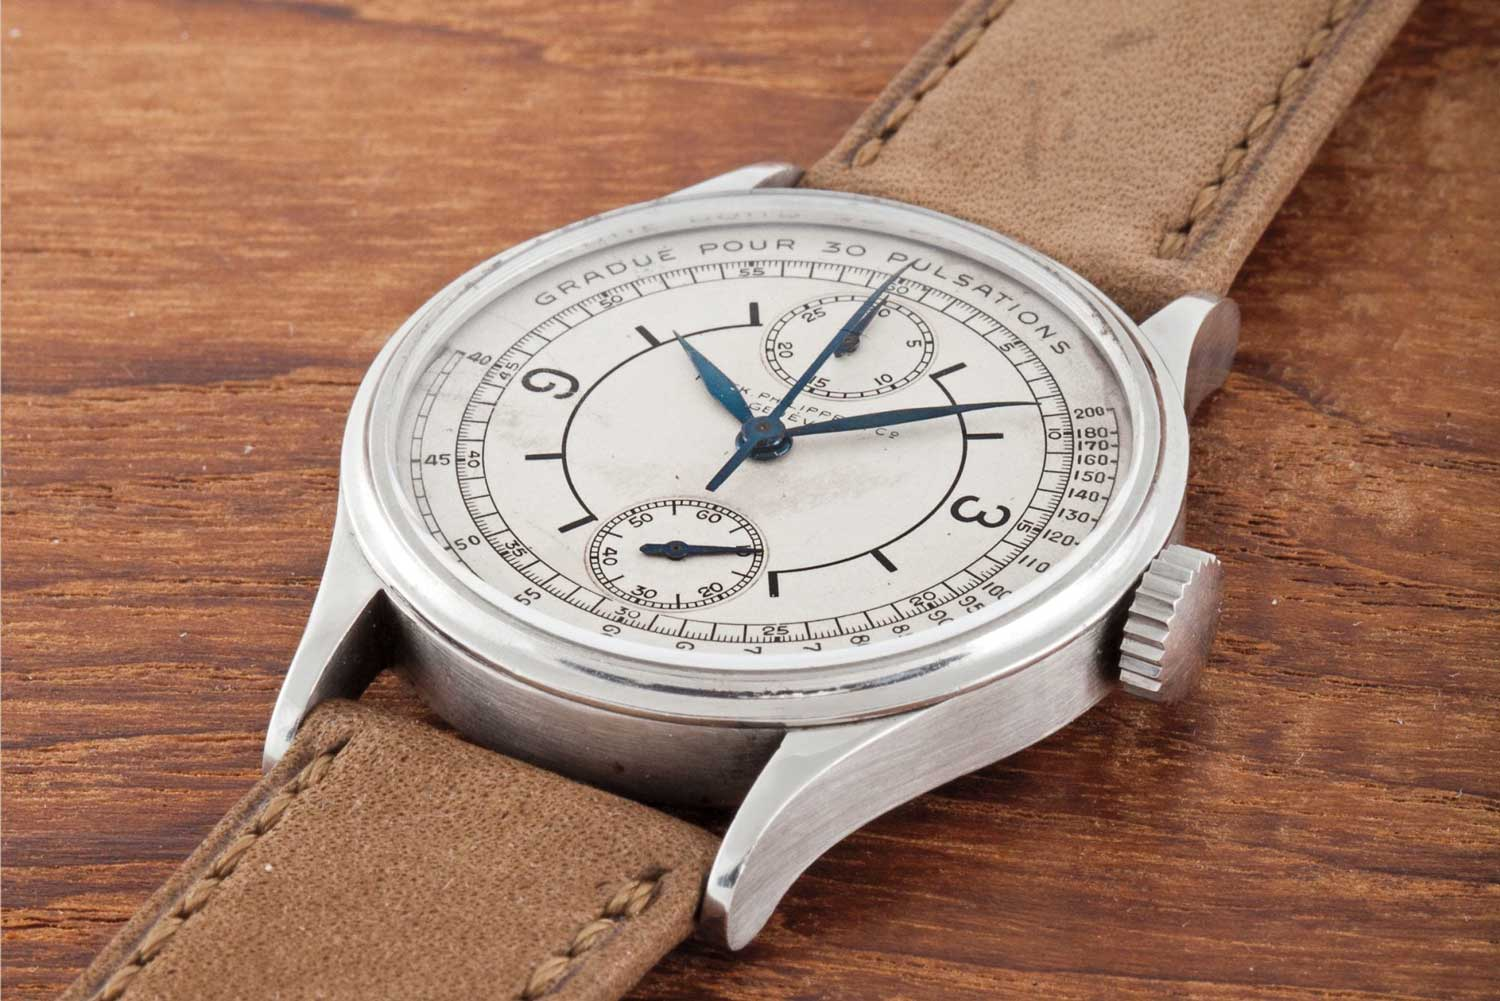 1927 Patek Philippe ref. 130 steel single button chronograph wristwatch with vertical registers, sector dial and pulsometer-scale (Image: phillipswatches.com)